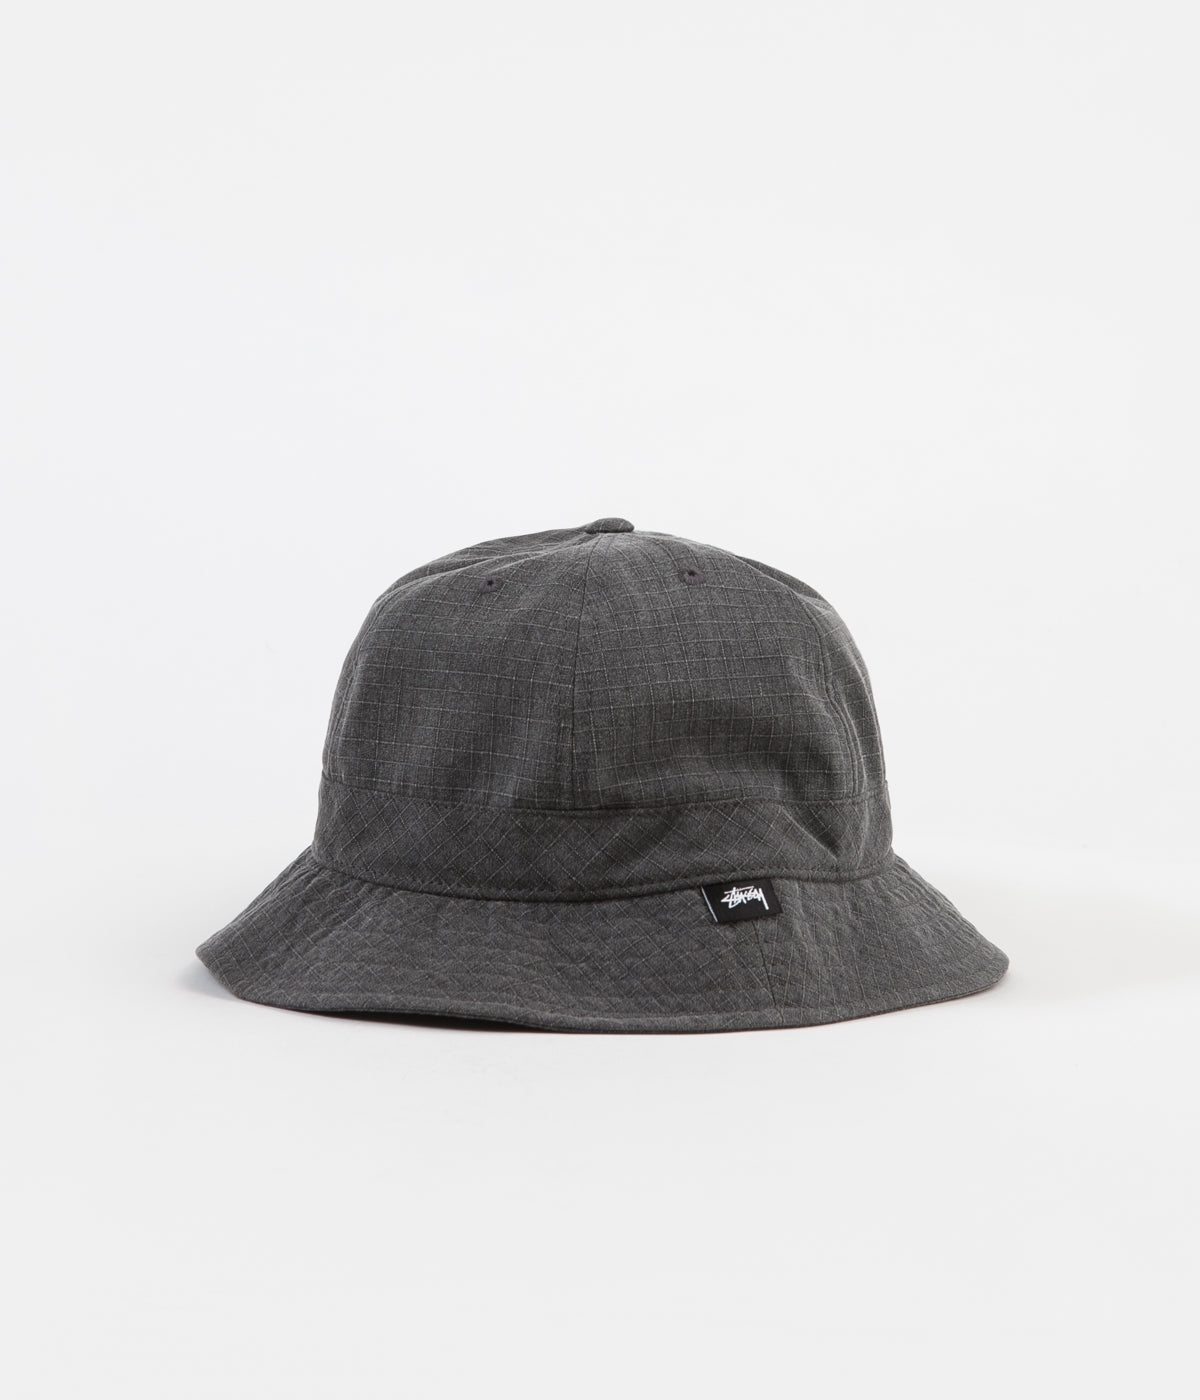 bb733d7b0eae2d Stussy Washed Ripstop Bell Bucket Hat - Black | Flatspot